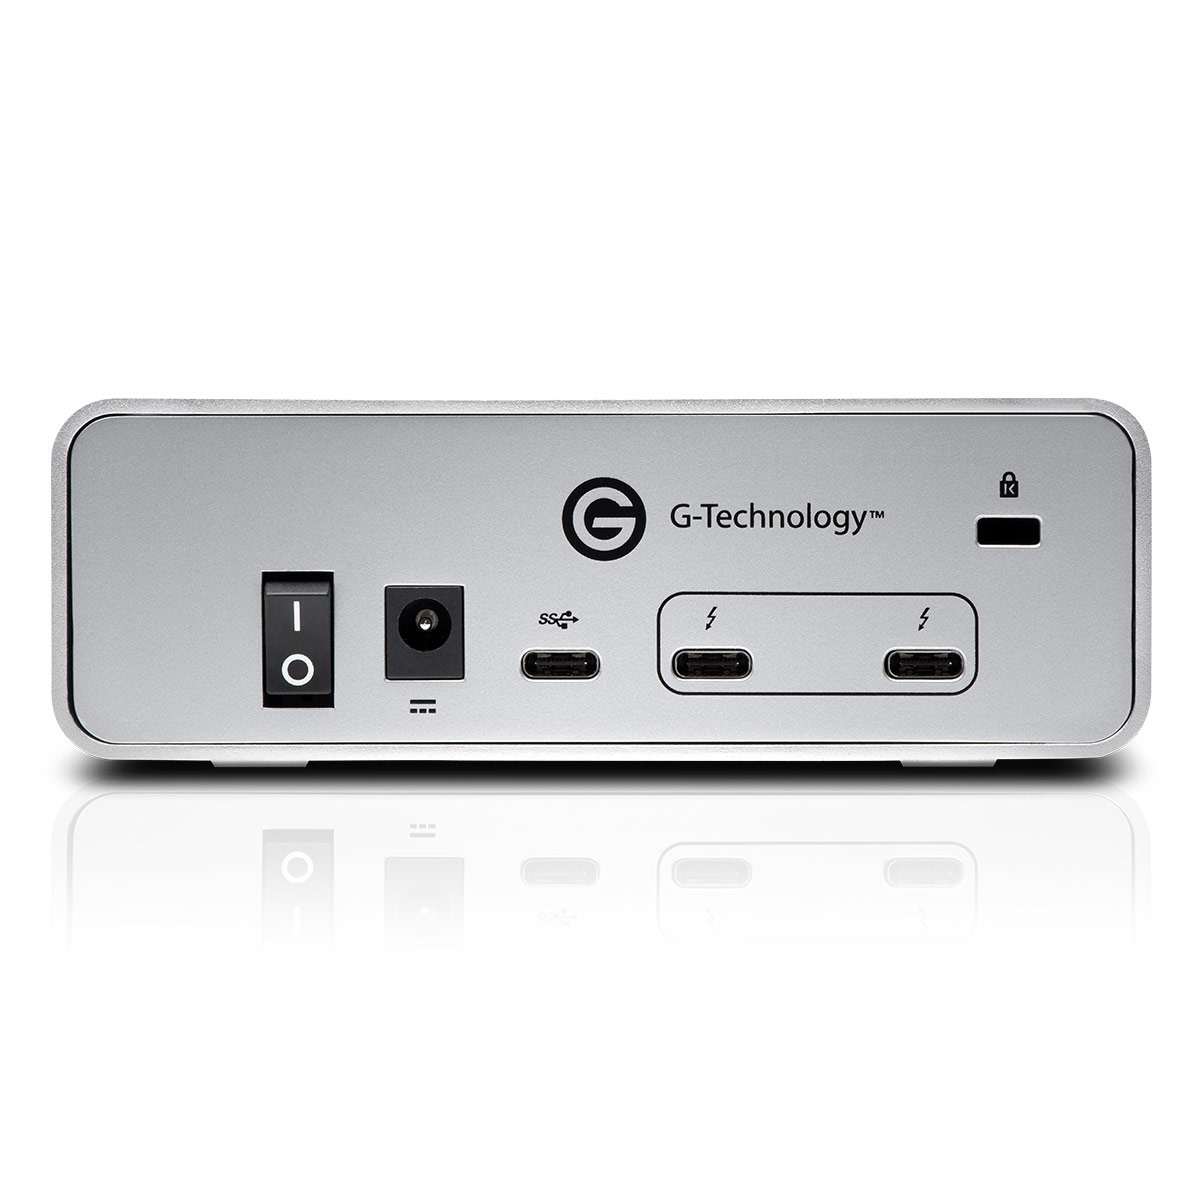 G-Technology G-DRIVE mobile USB-C 1TB Hard Drive Gray with Case Bundle